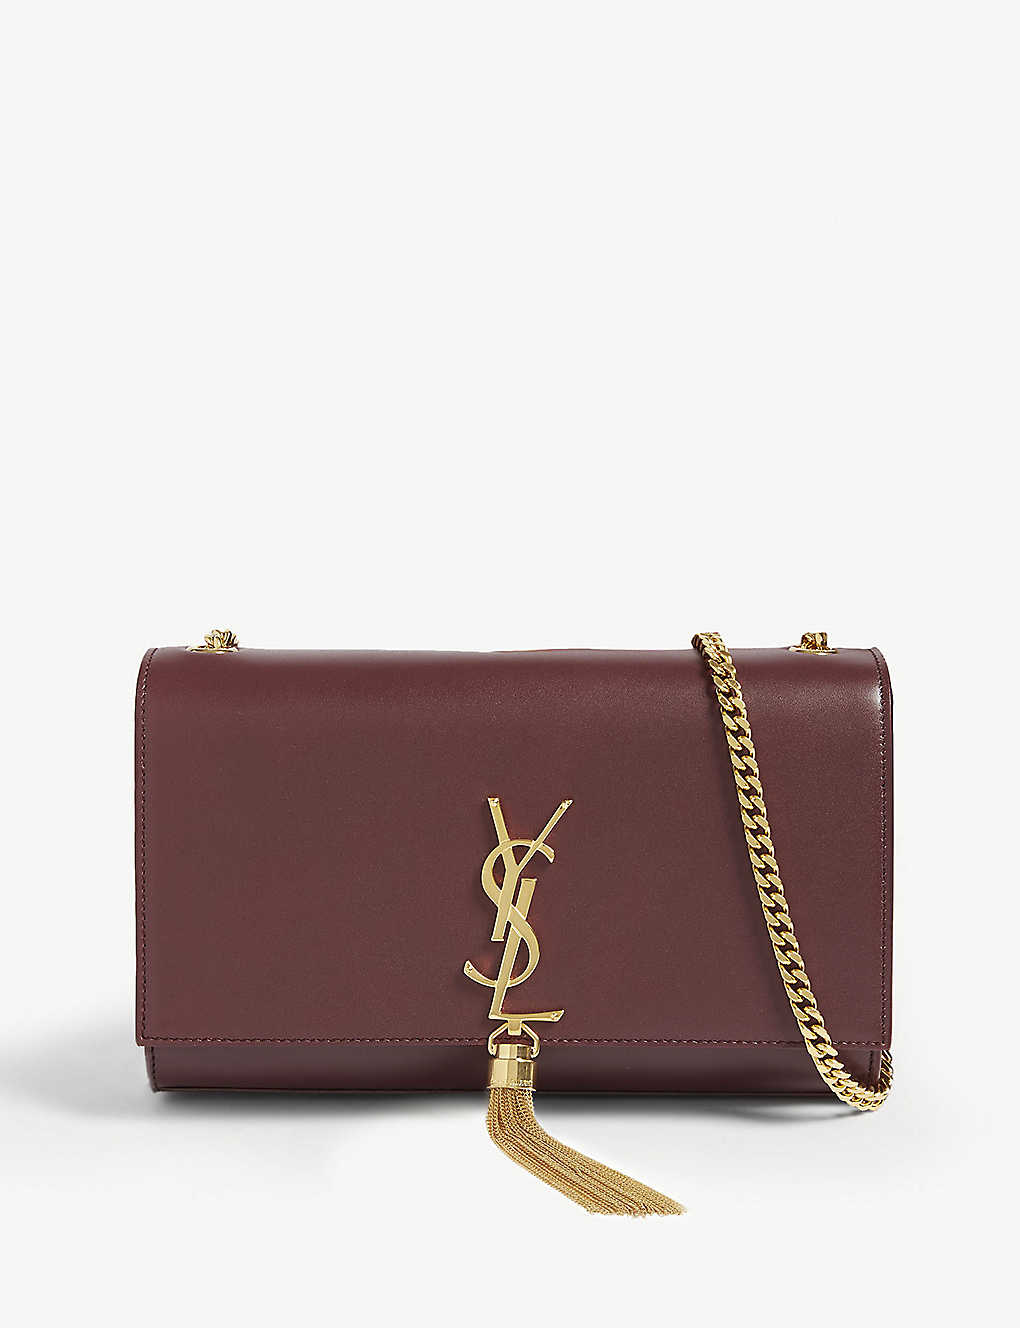 SAINT LAURENT: Kate tassel medium leather shoulder bag